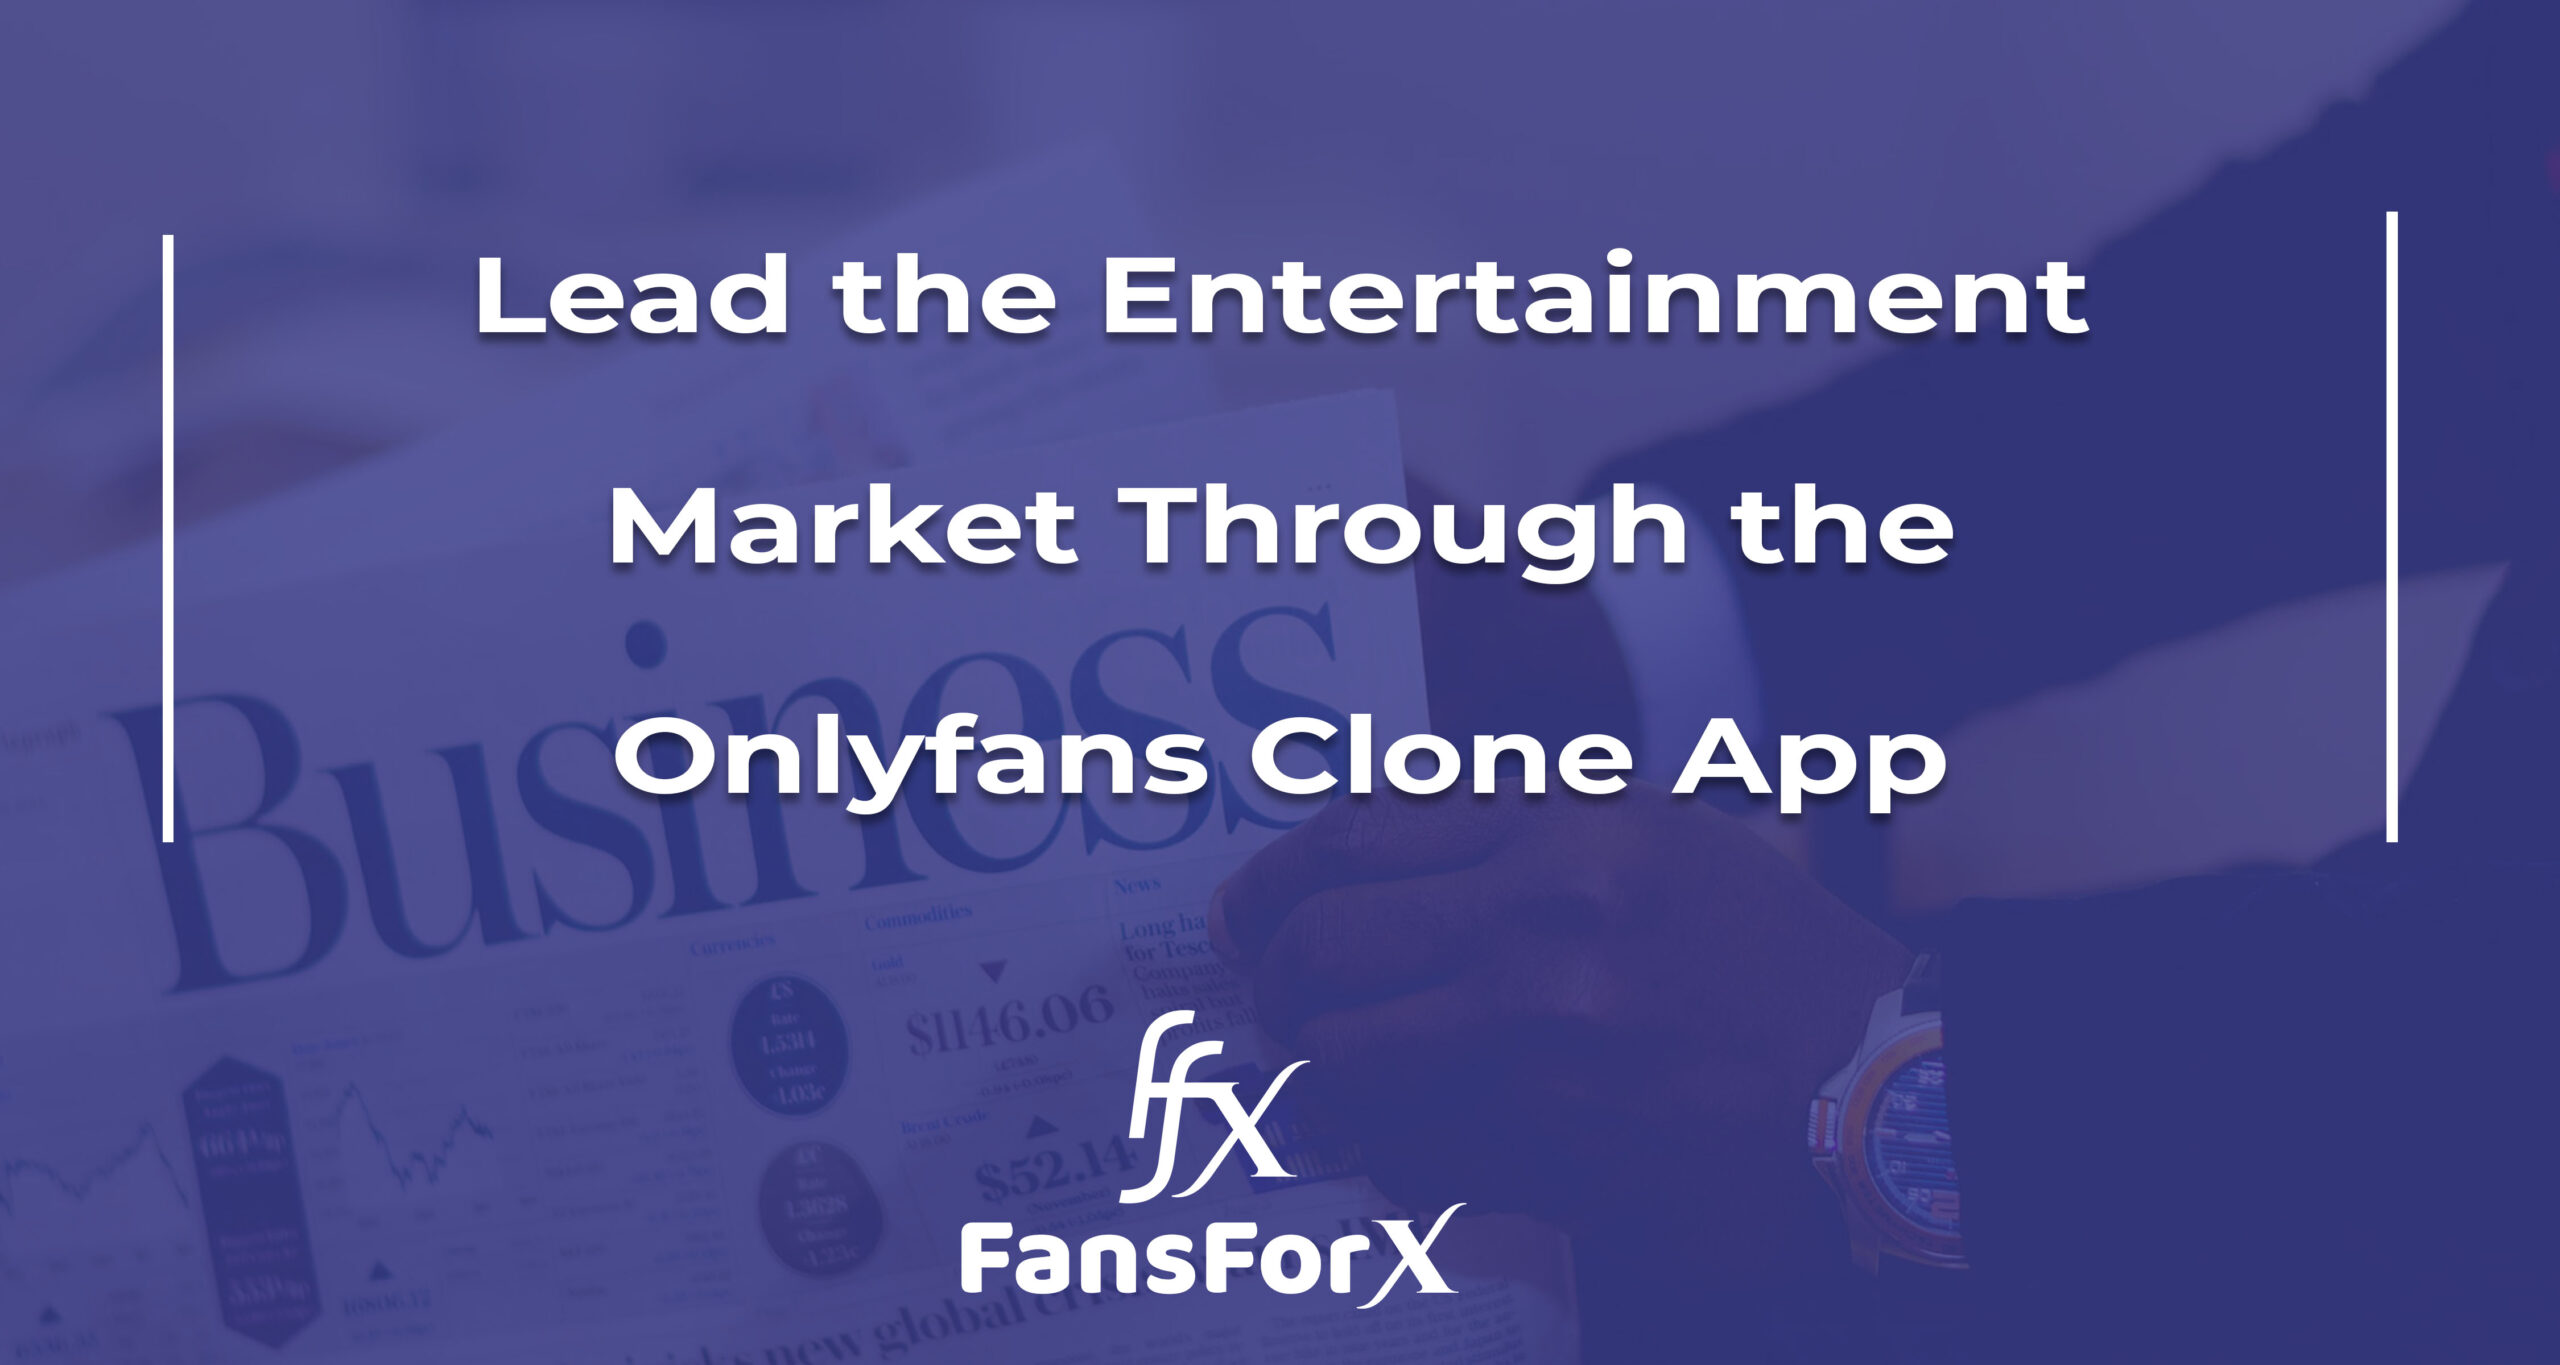 Lead the Entertainment Market Through the Onlyfans Clone App